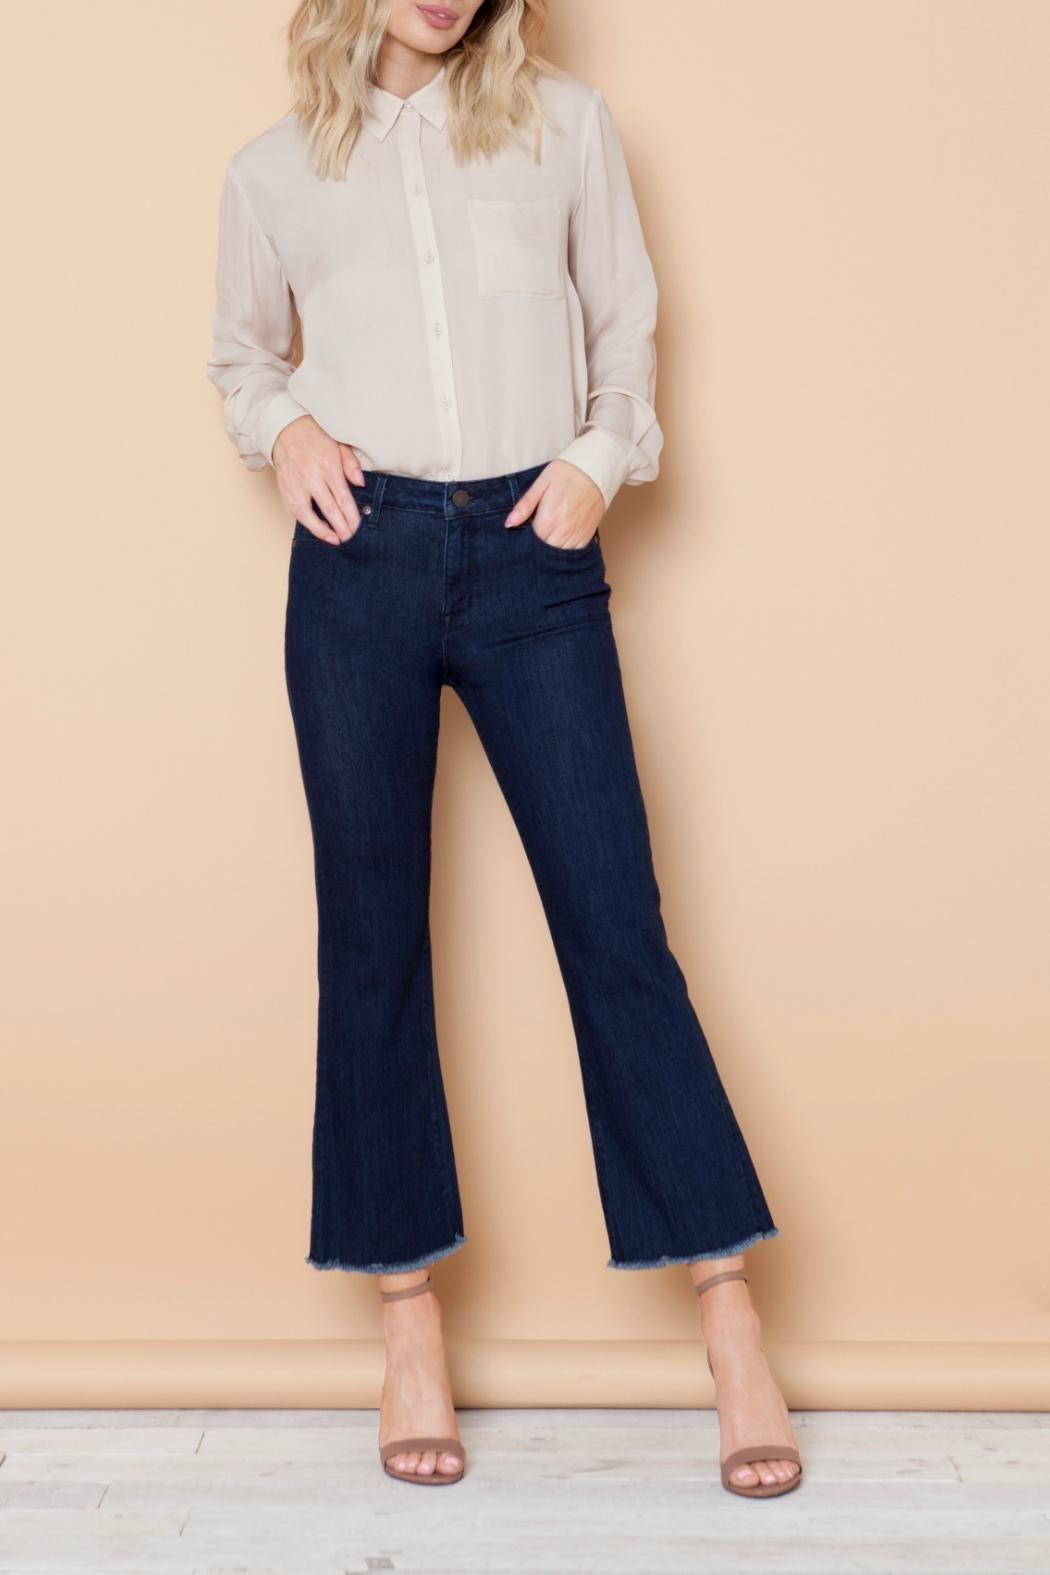 Parker Smith Brynna Cropped Flare Jeans - Main Image